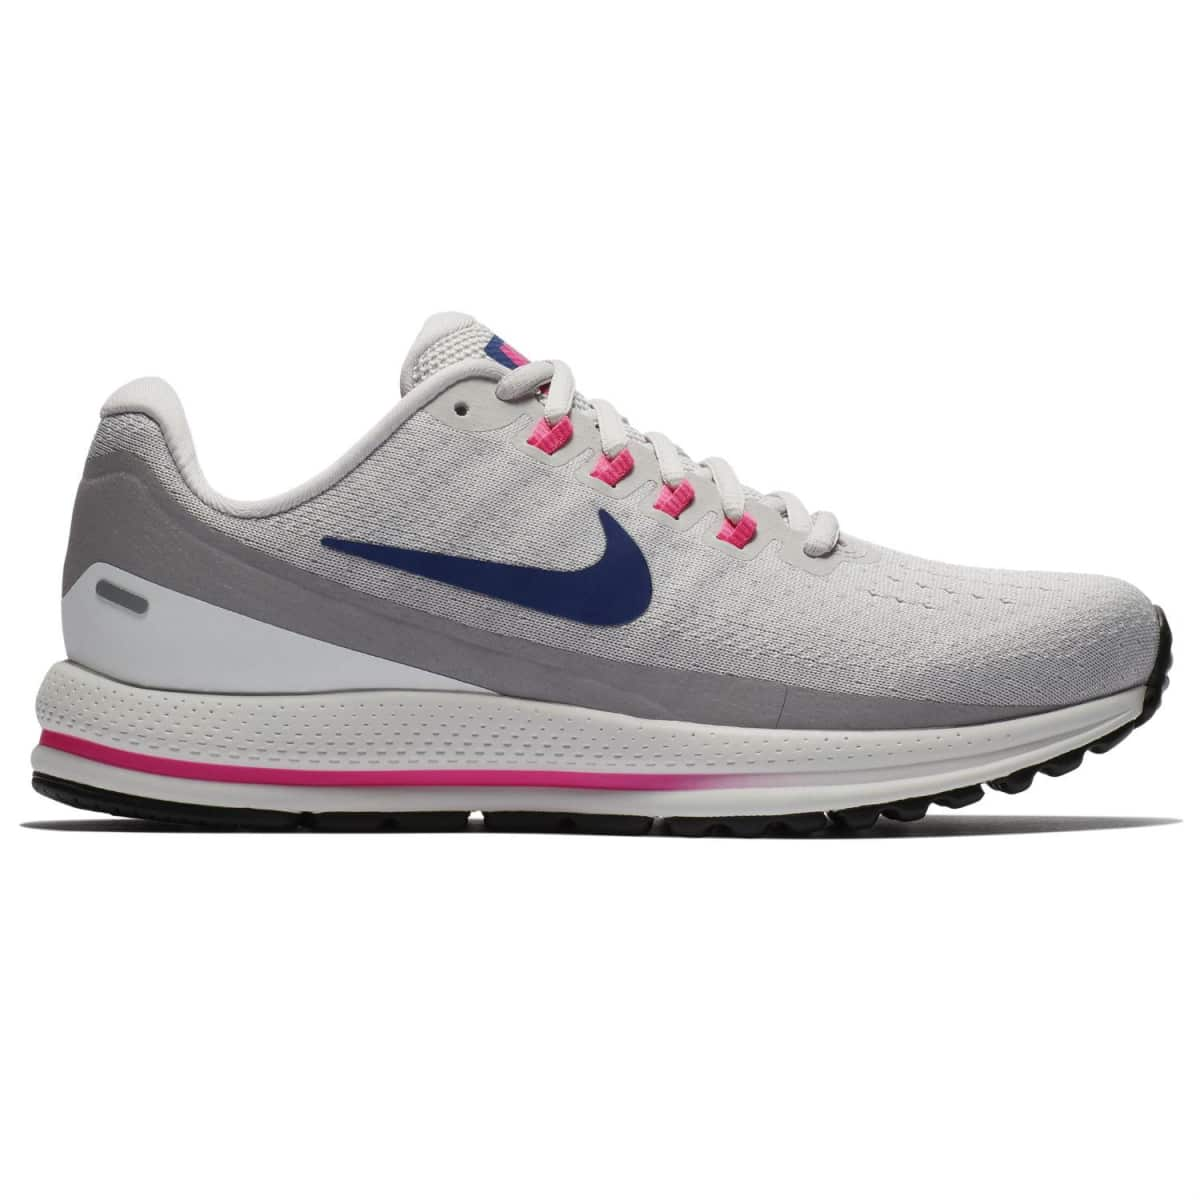 reputable site 89c79 ec2e8 hot product image. nike lds air zoom 99d33 3657a